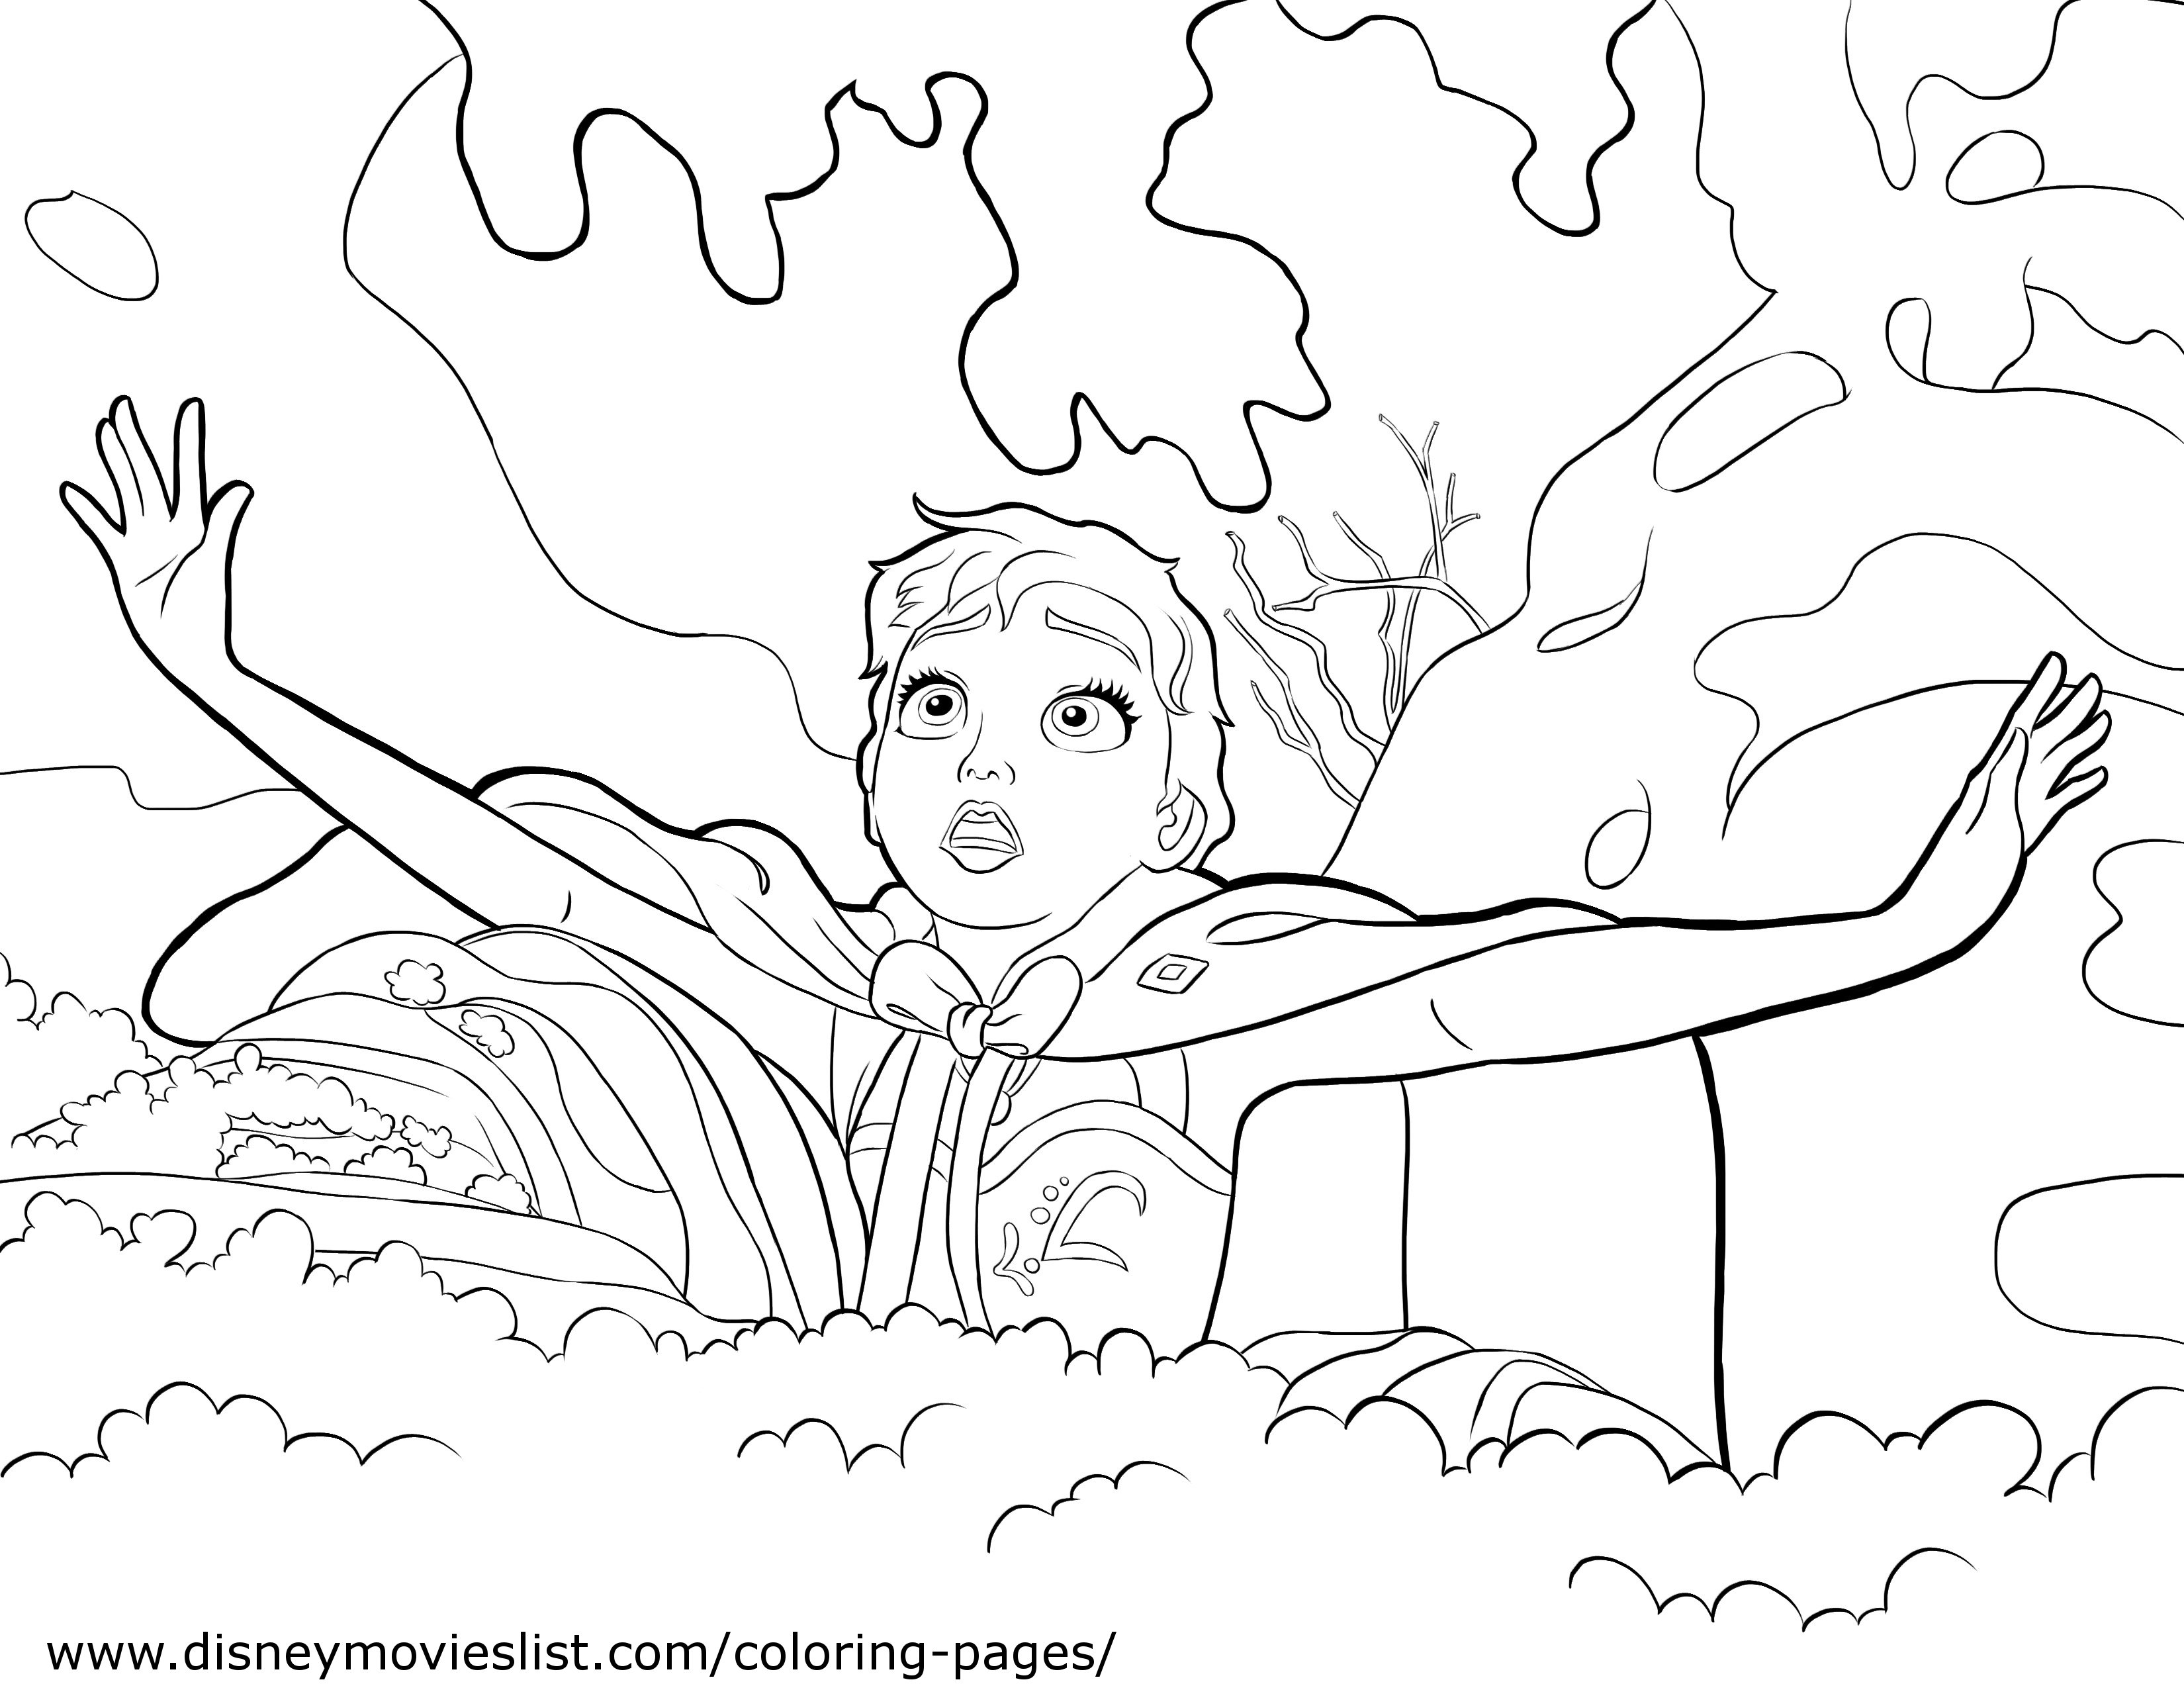 Elsa And Anna Images Coloring Page HD Wallpaper Background Photos